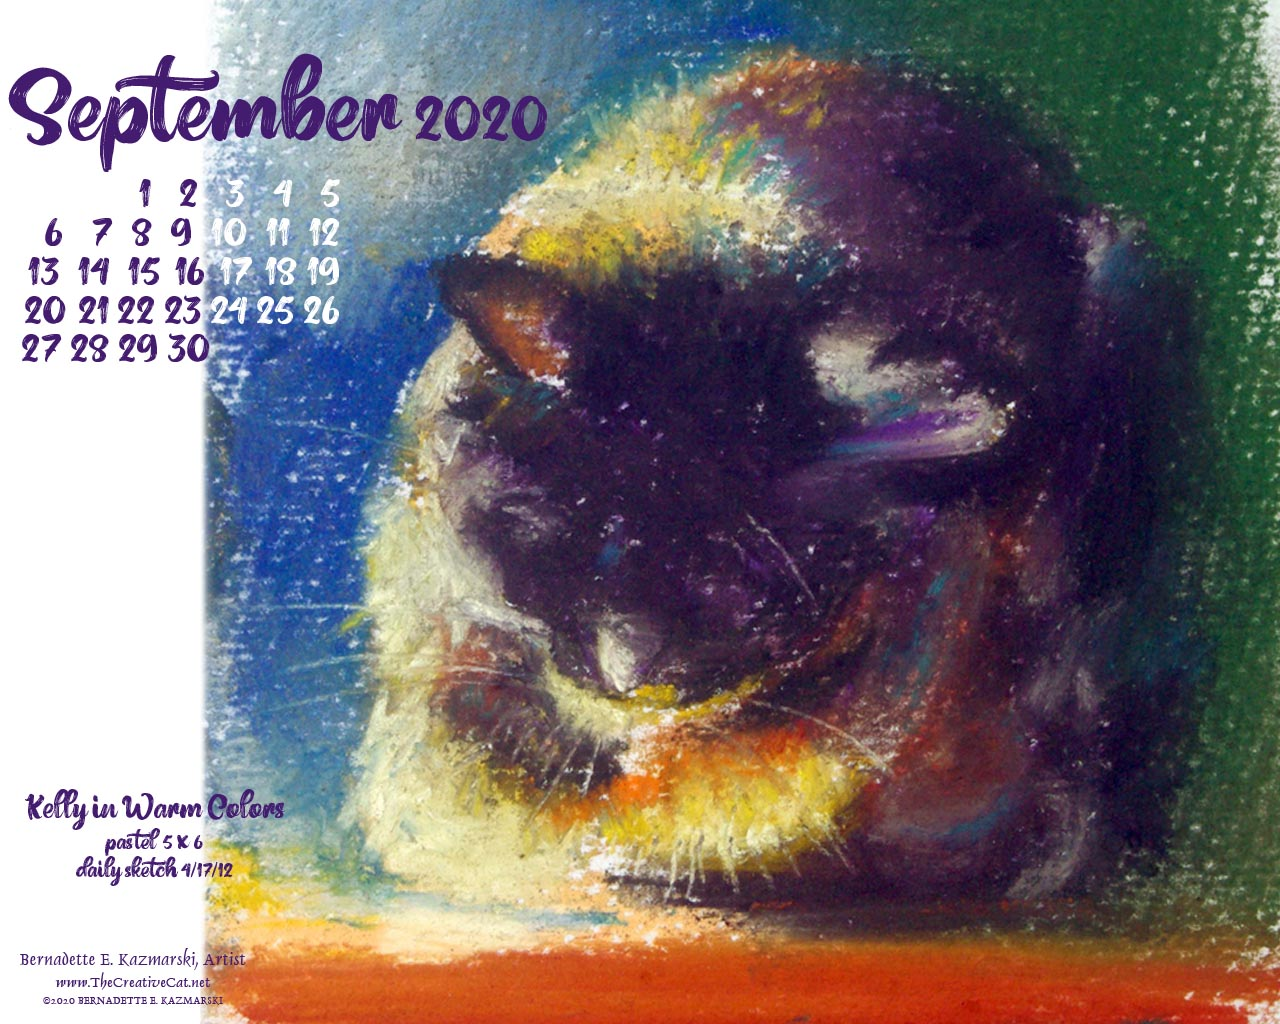 Desktop calendar 1280 x 1024 for square screens.